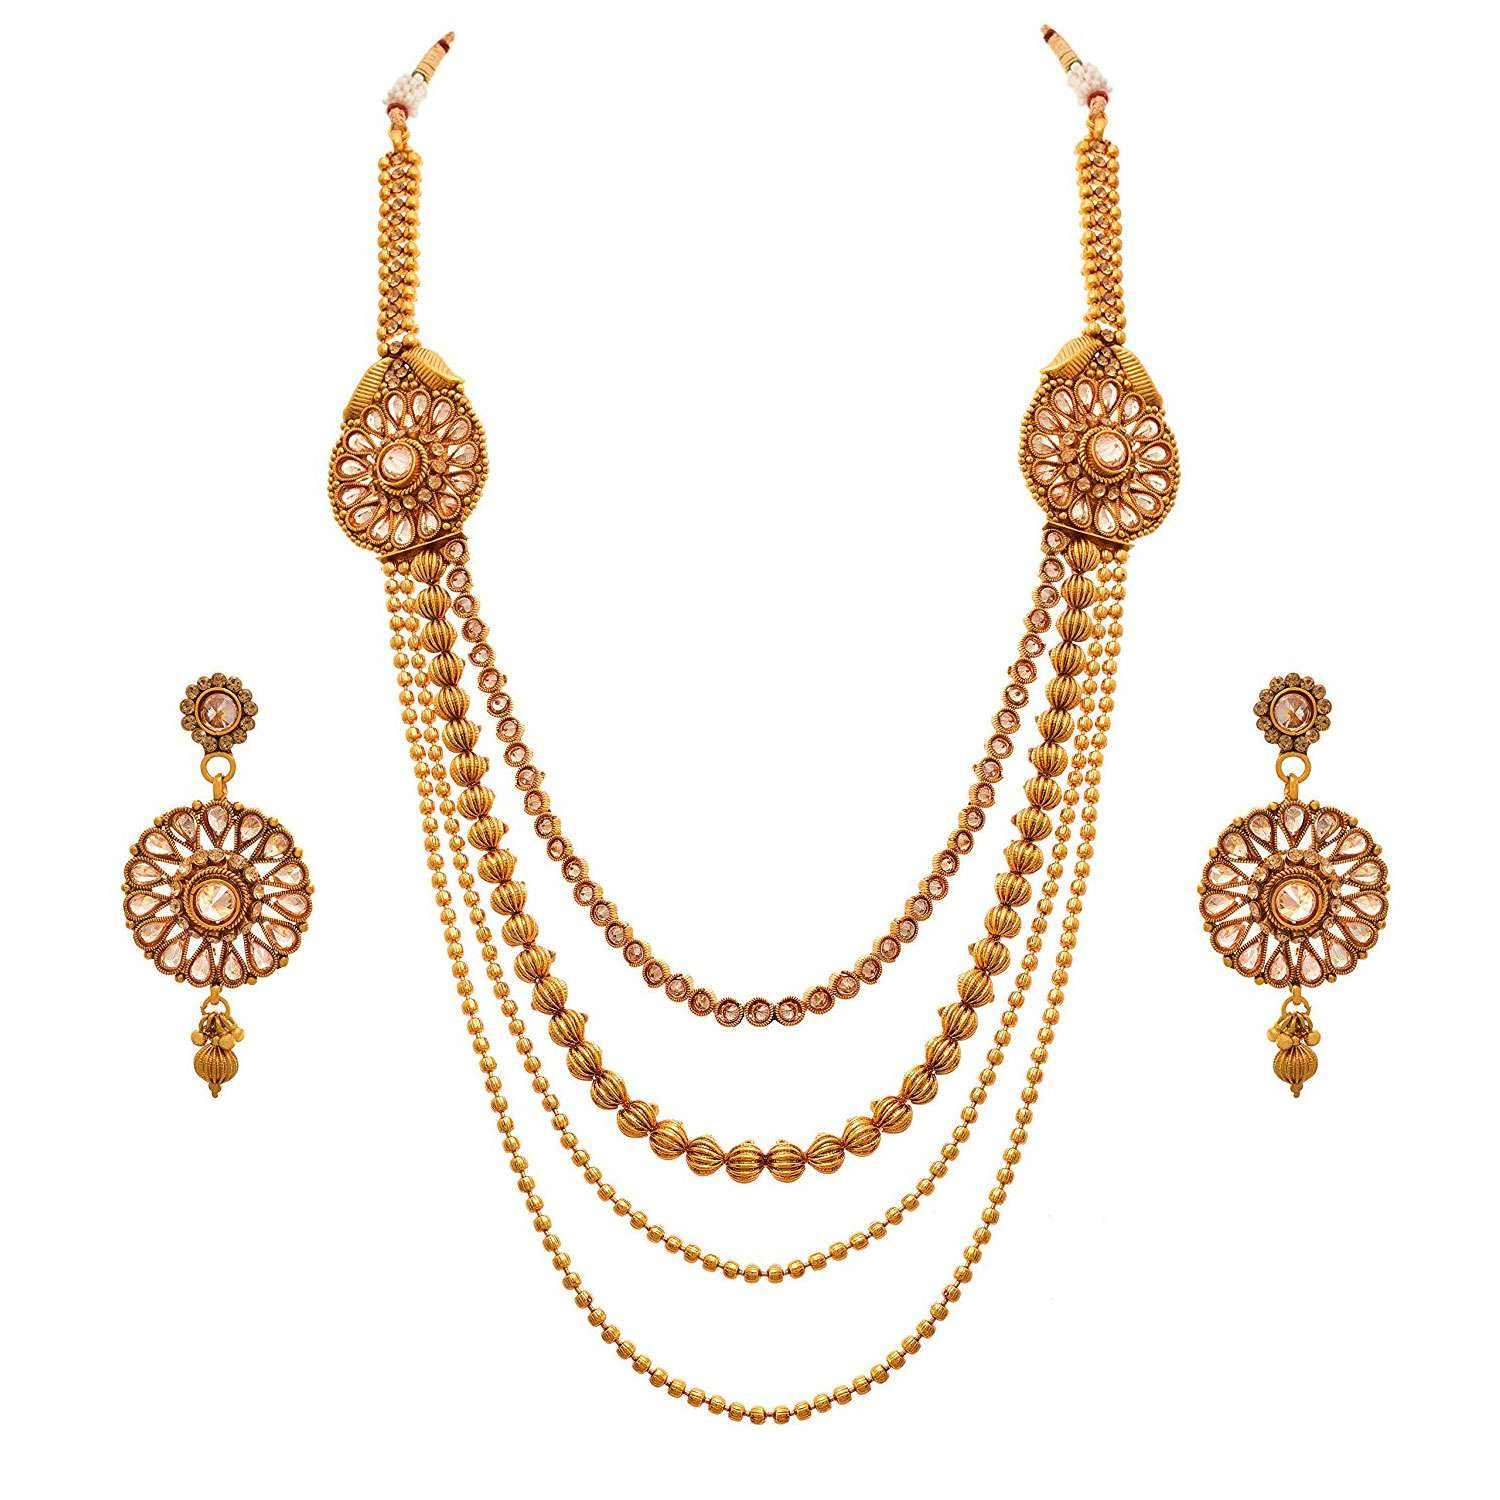 JFL - Jewellery For Less Traditional Ethnic One Gram Gold Plated Bead Polki Diamond Designer Long Necklace Set With Earring For Women & Girls.